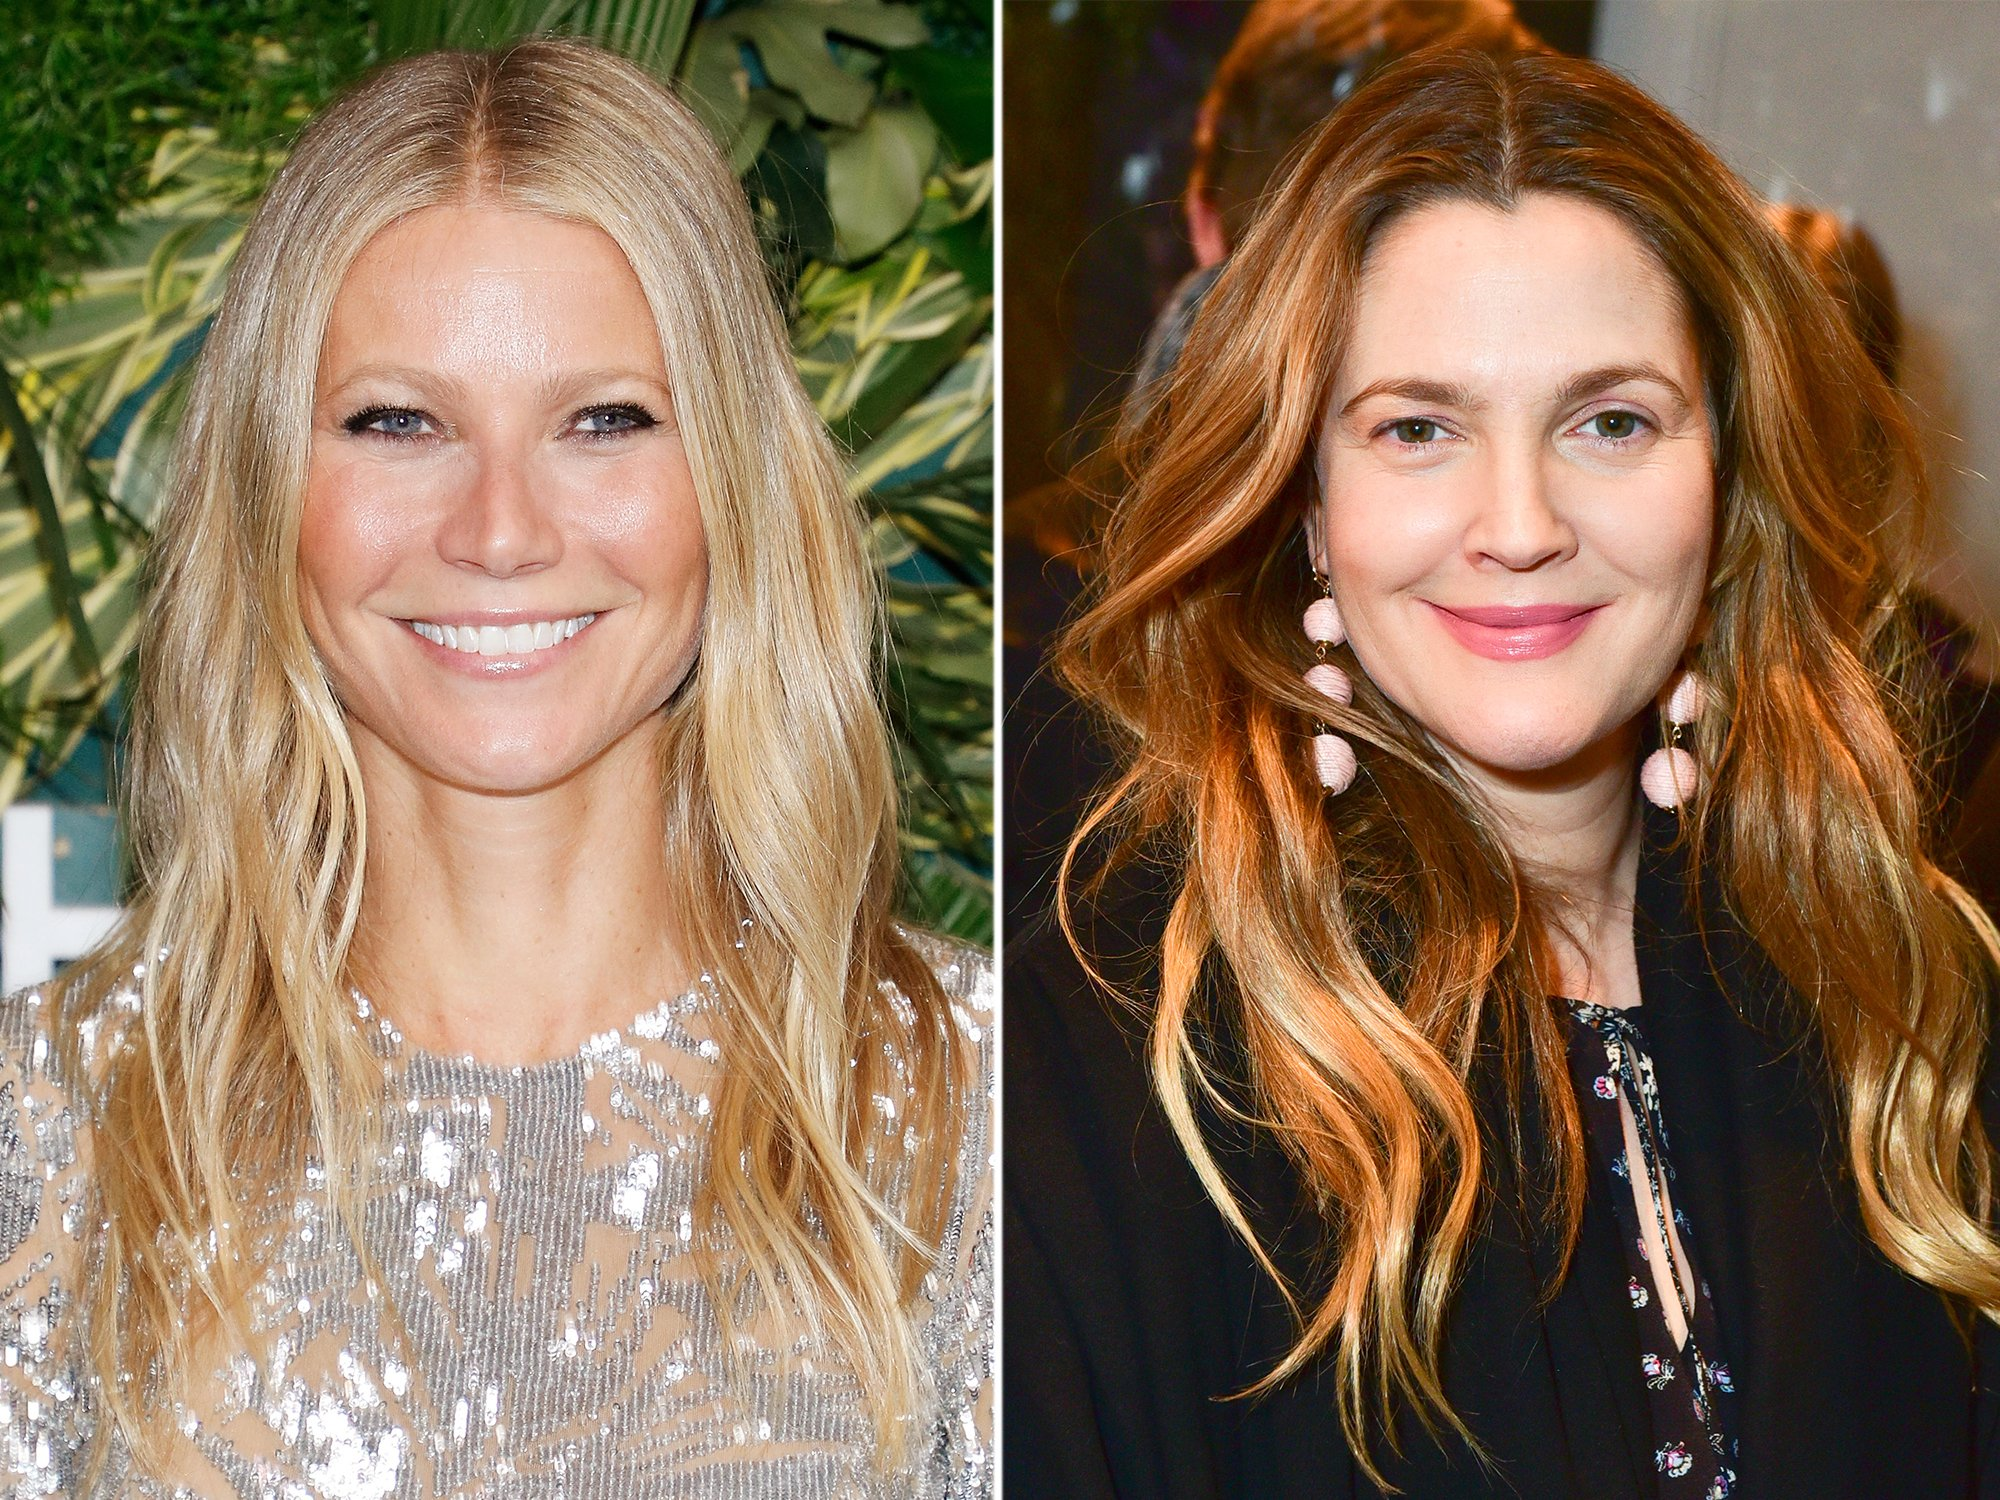 Drew Barrymore and Gwyneth Paltrow Gush Over Their Friendship — and Wanting an 'Orgasmatron'